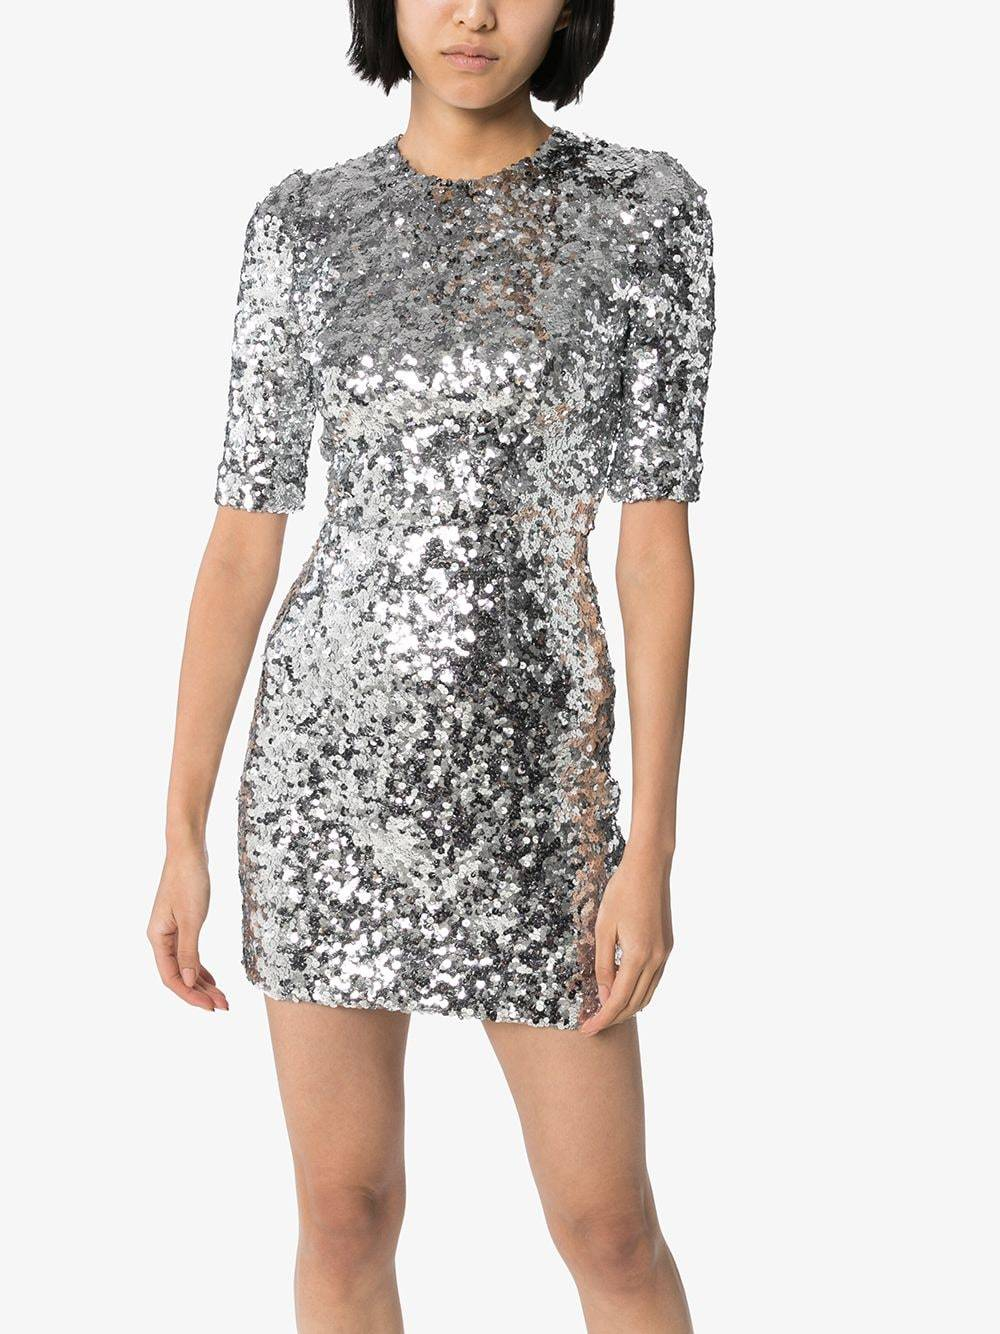 DOLCE & GABBANA Fitted Sequin Mini Dress